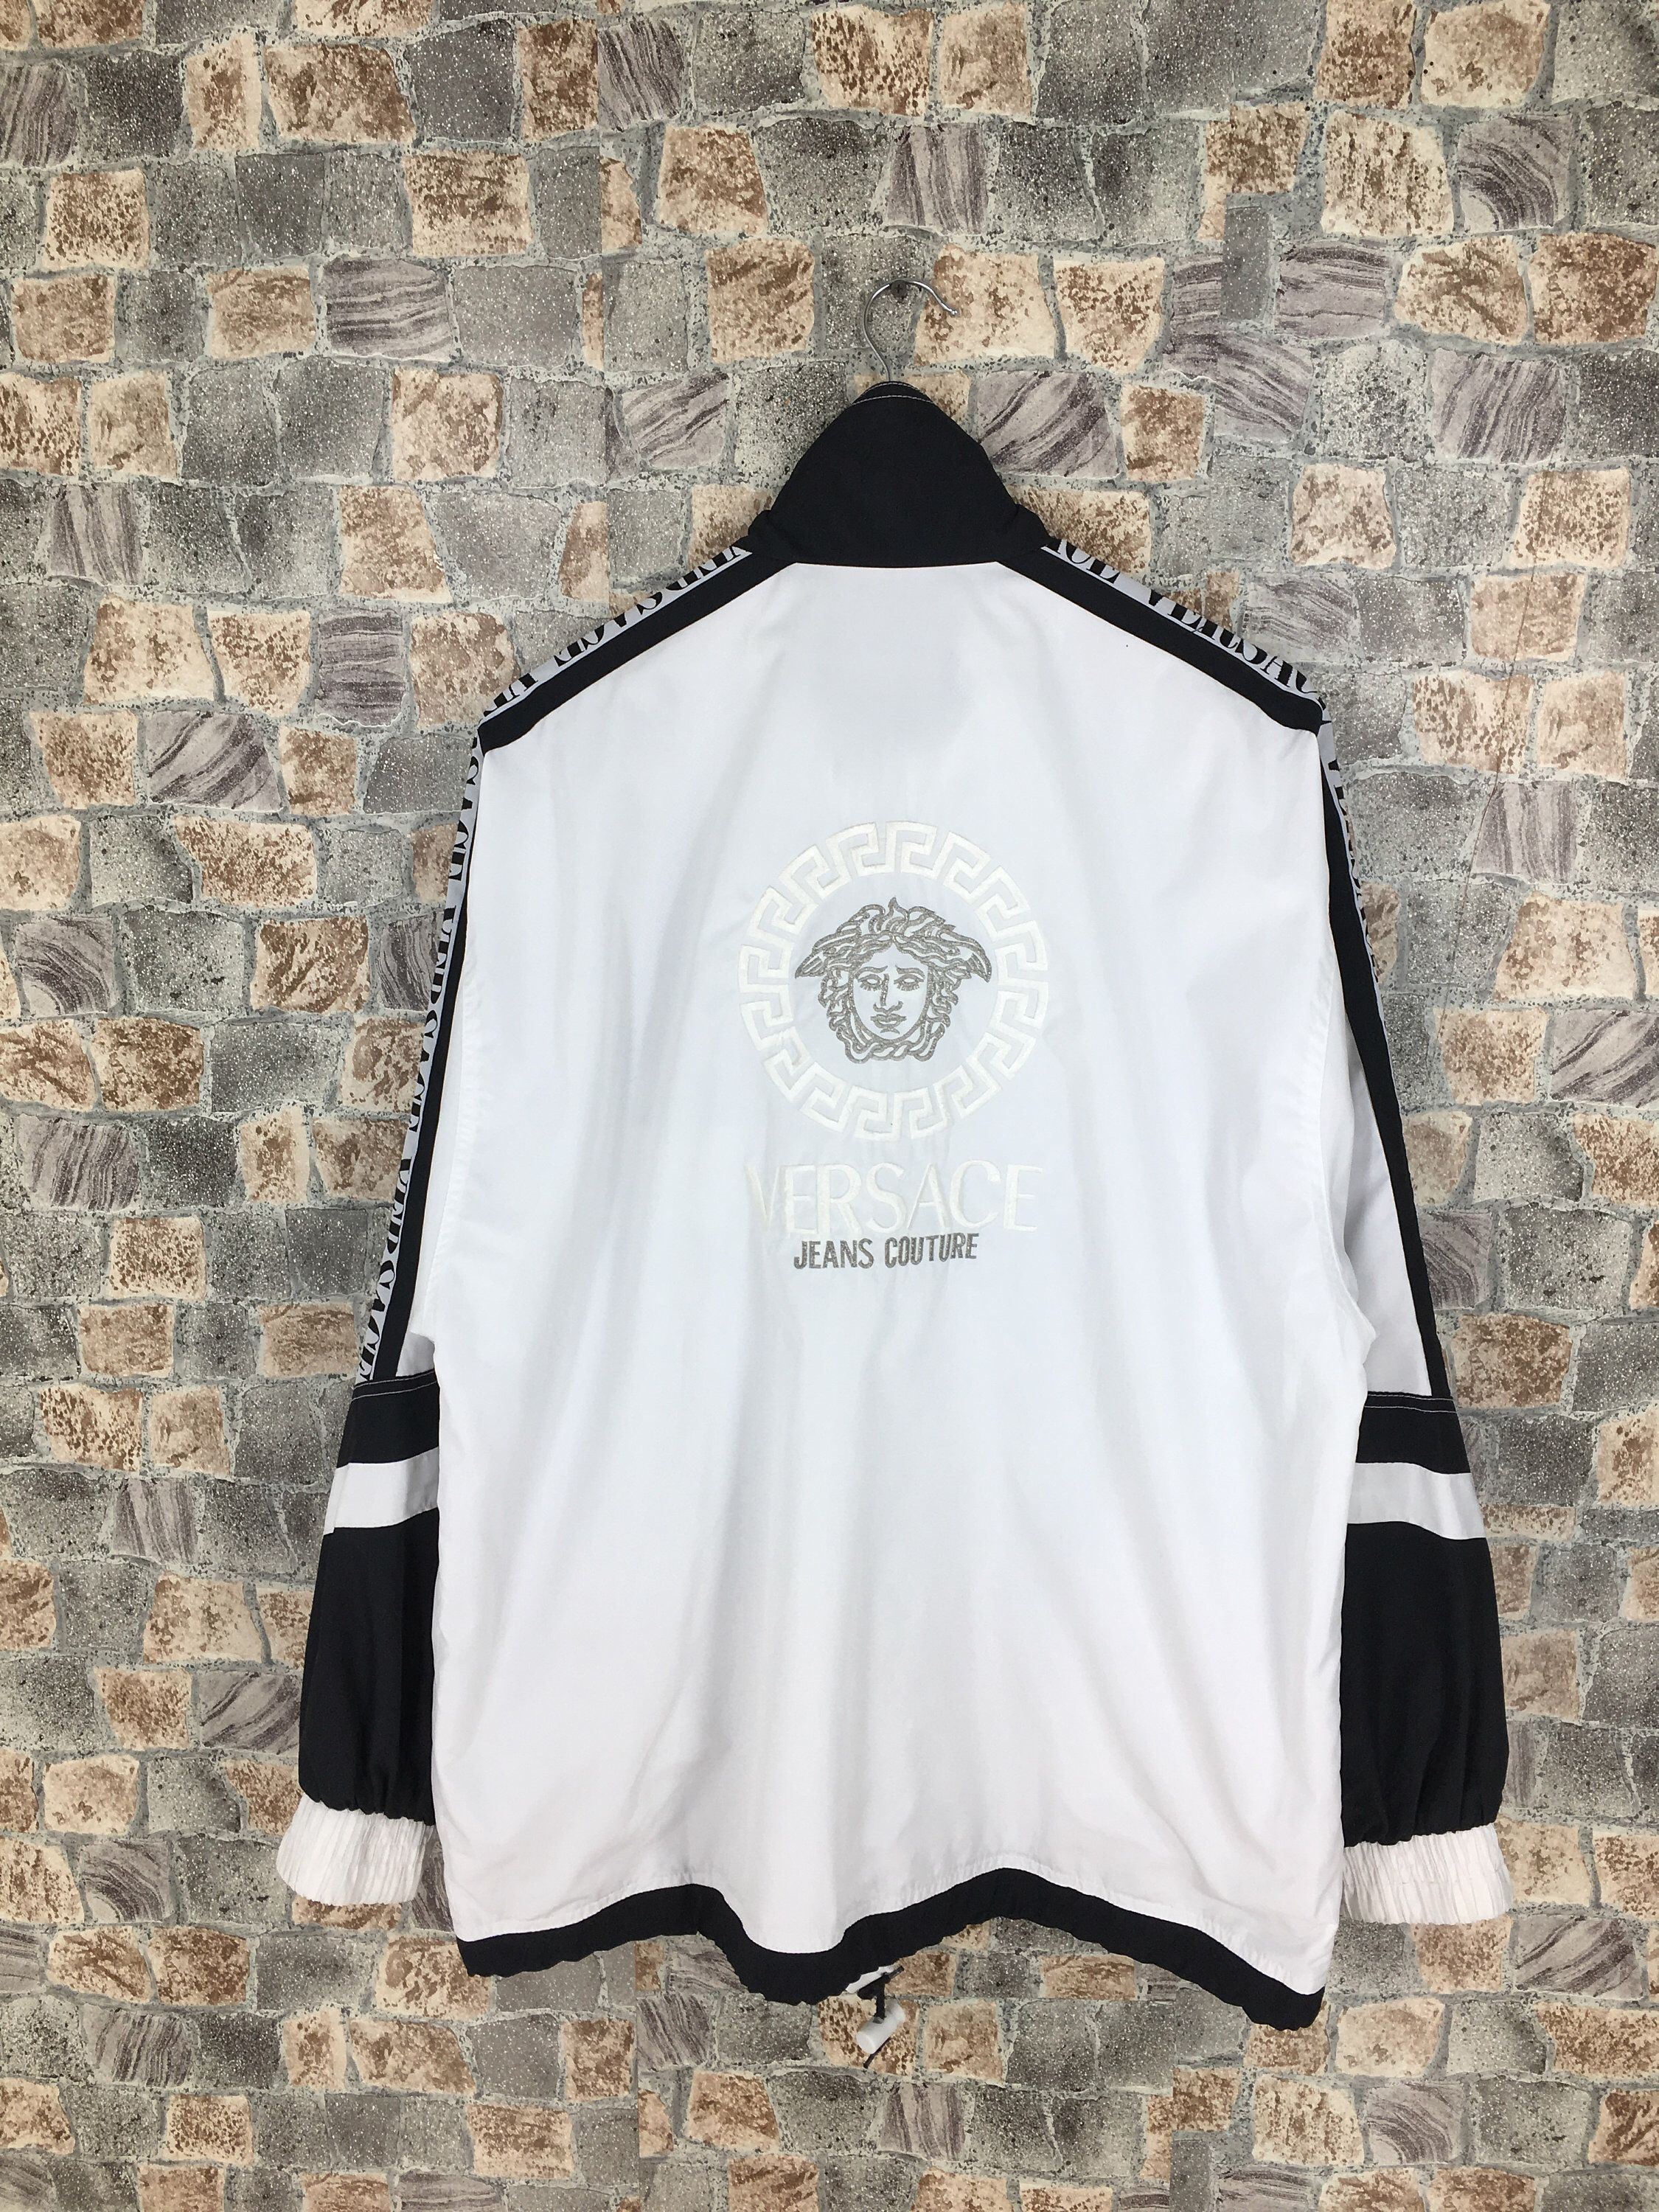 Excited To Share The Latest Addition To My Etsy Shop Vintage Versace Jeans Couture Jacket White Large Versace Sweatshirt Versace Jacket Versace Jeans Couture